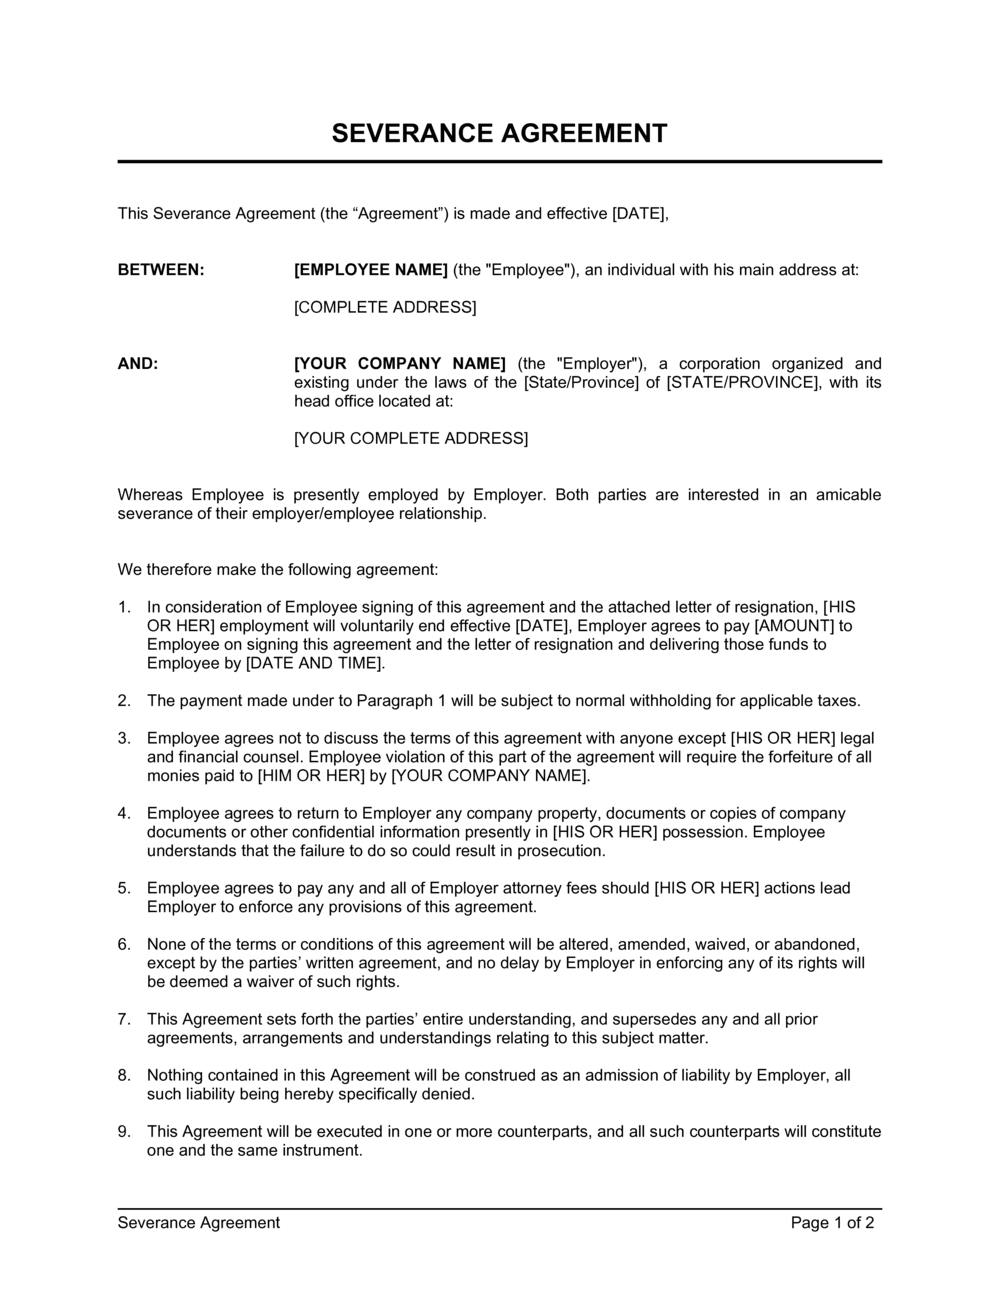 Business-in-a-Box's Severance Agreement Template